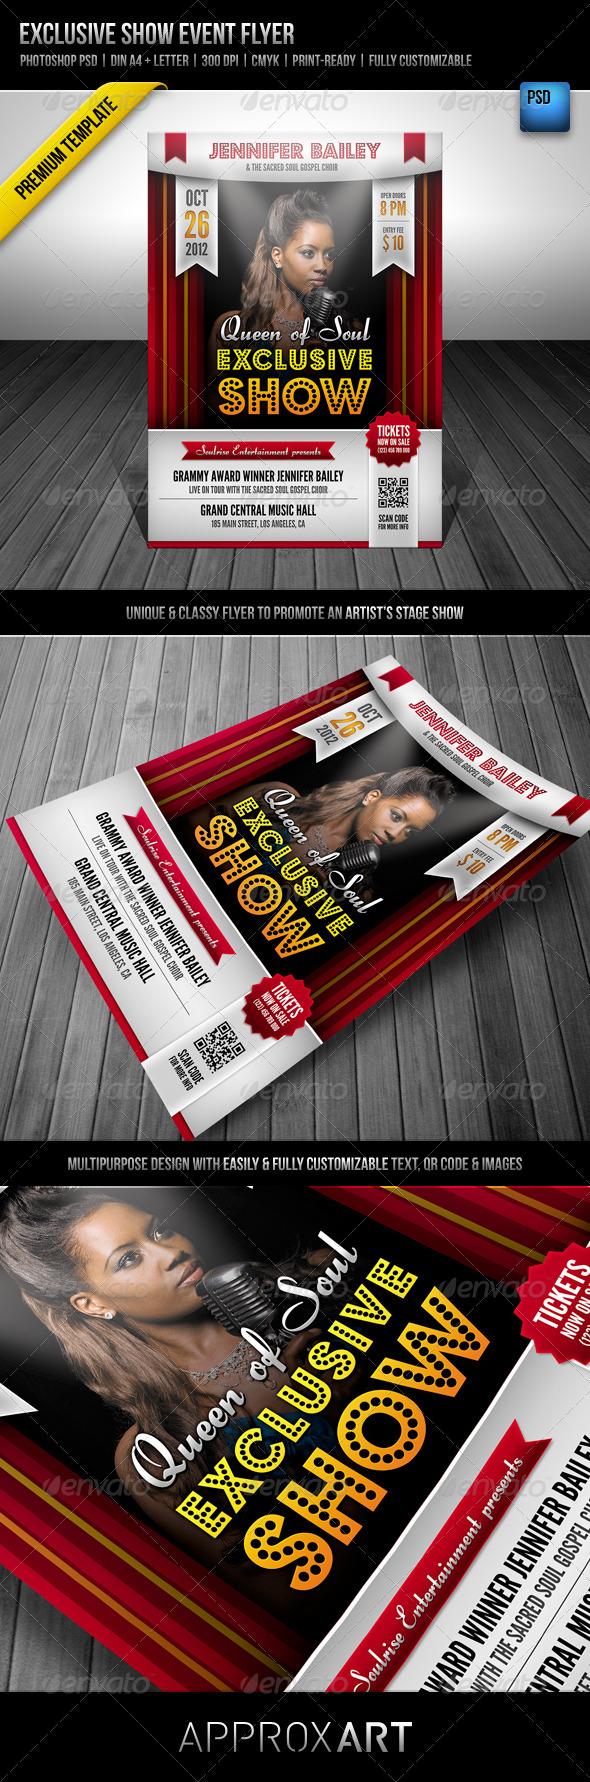 Exclusive Show Event Flyer - Miscellaneous Events